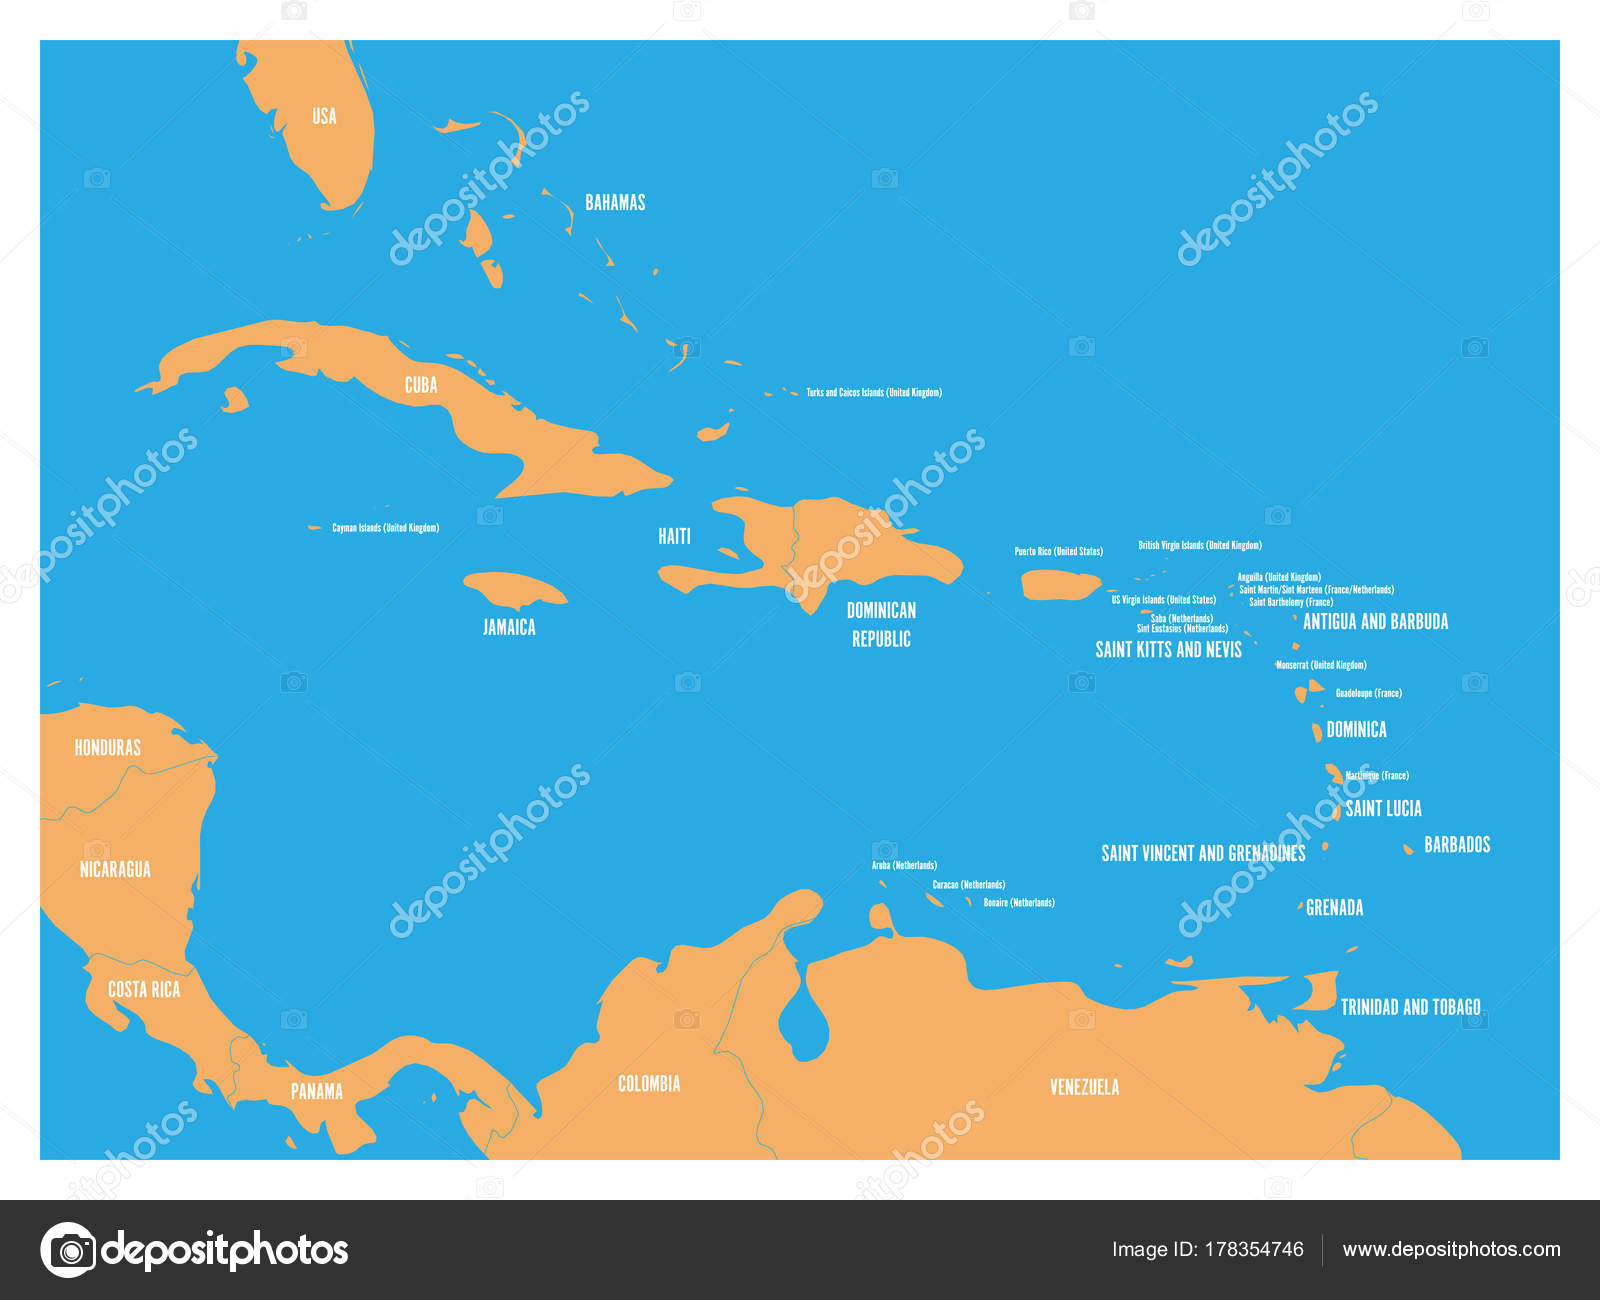 Picture of: Central America And Carribean States Political Map Yellow Land With Black Country Names Labels On Blue Sea Background Simple Flat Vector Illustration Stock Vector C Pyty 178354746